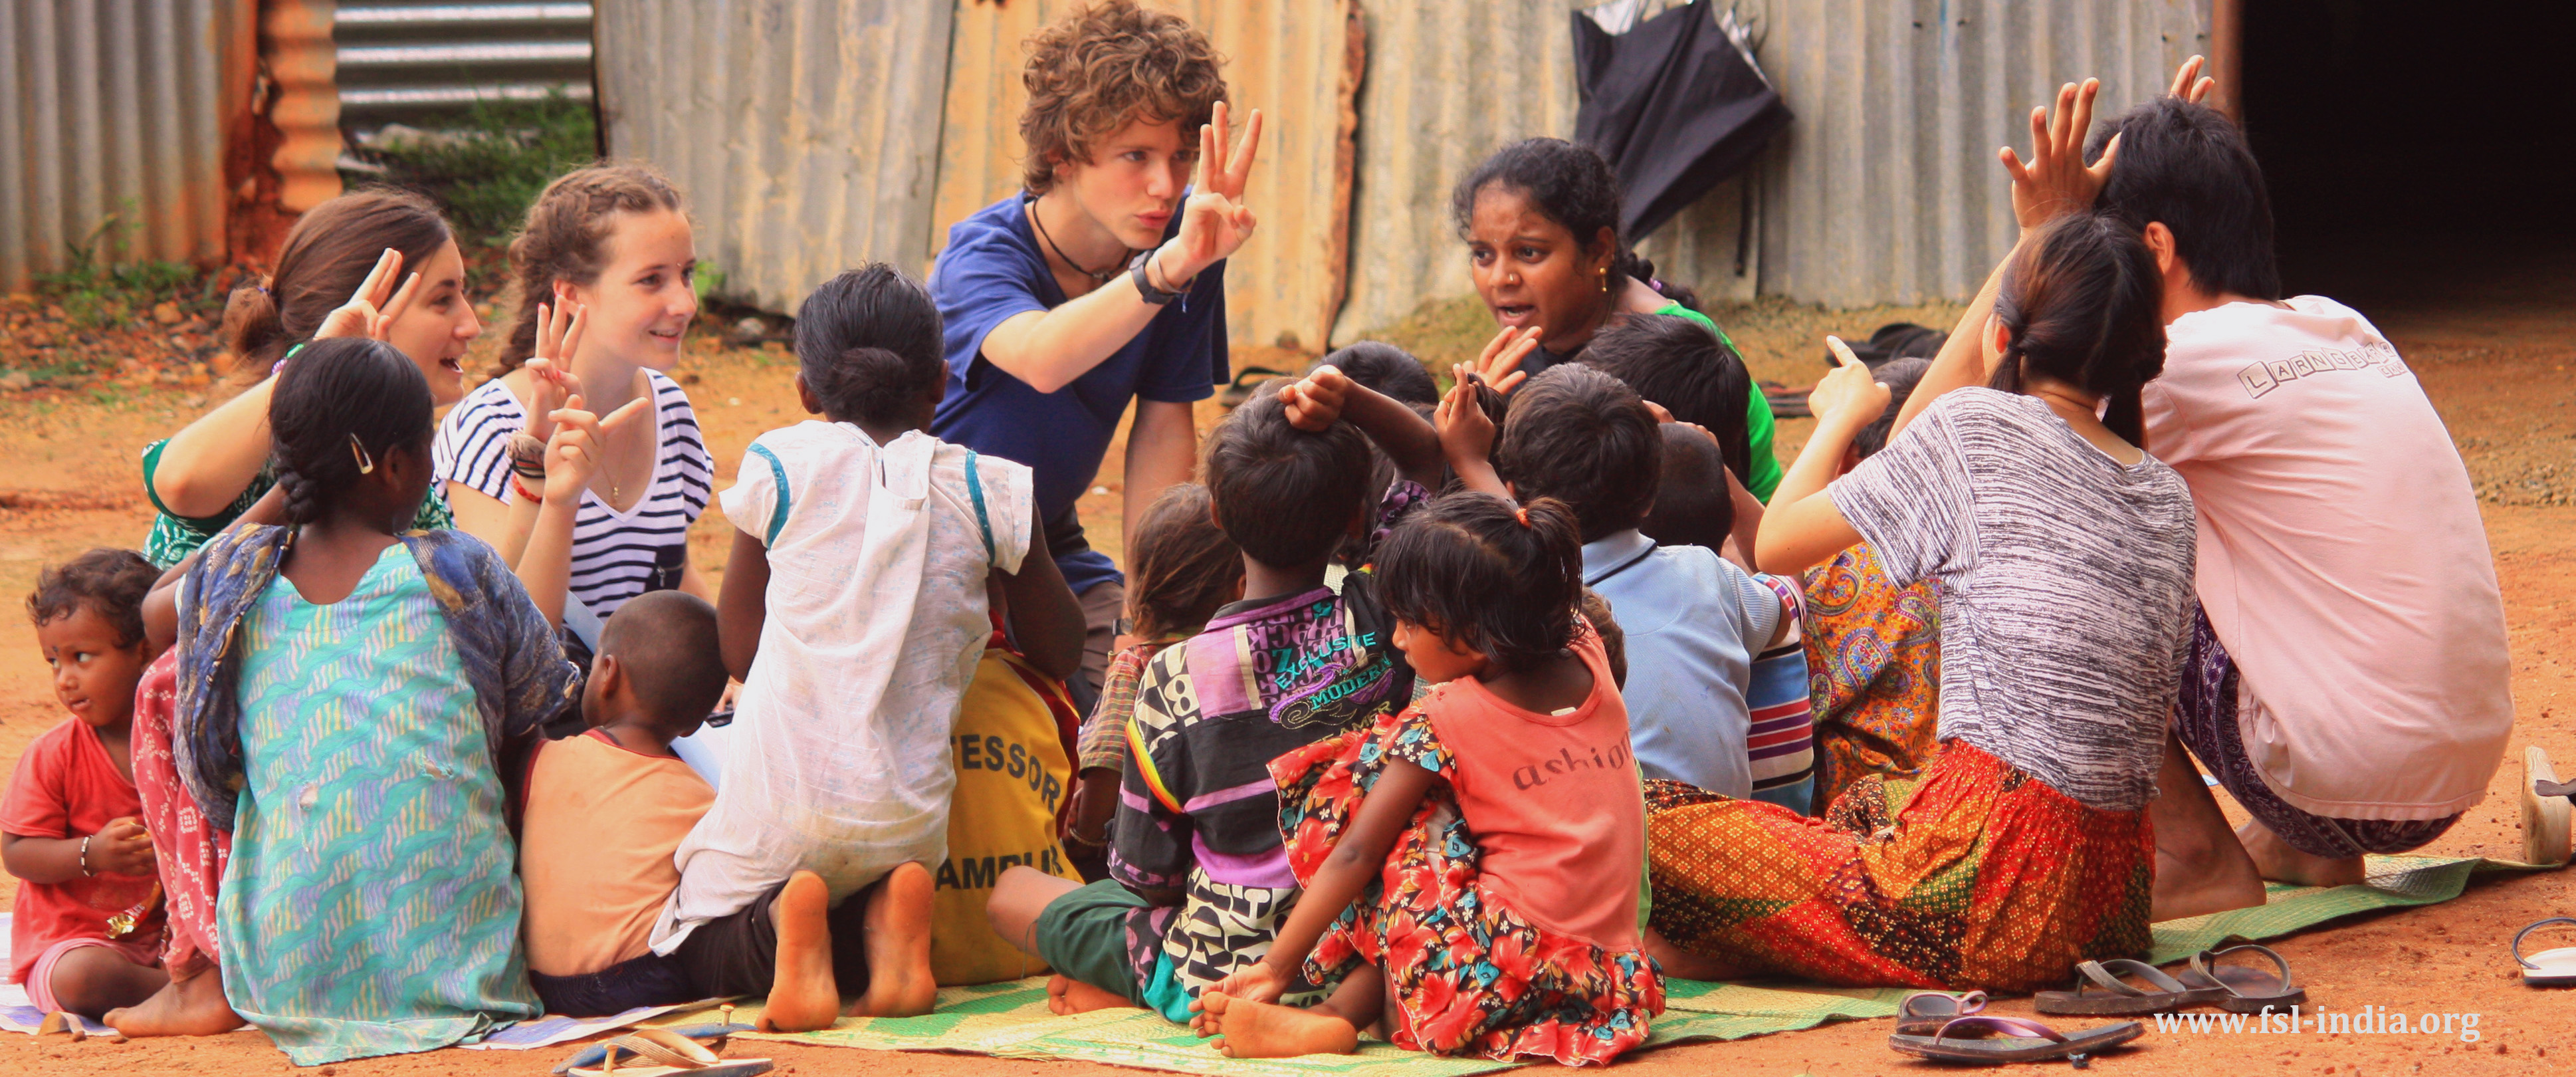 Field Services & Inter Cultural Learning - India (FSL-India)